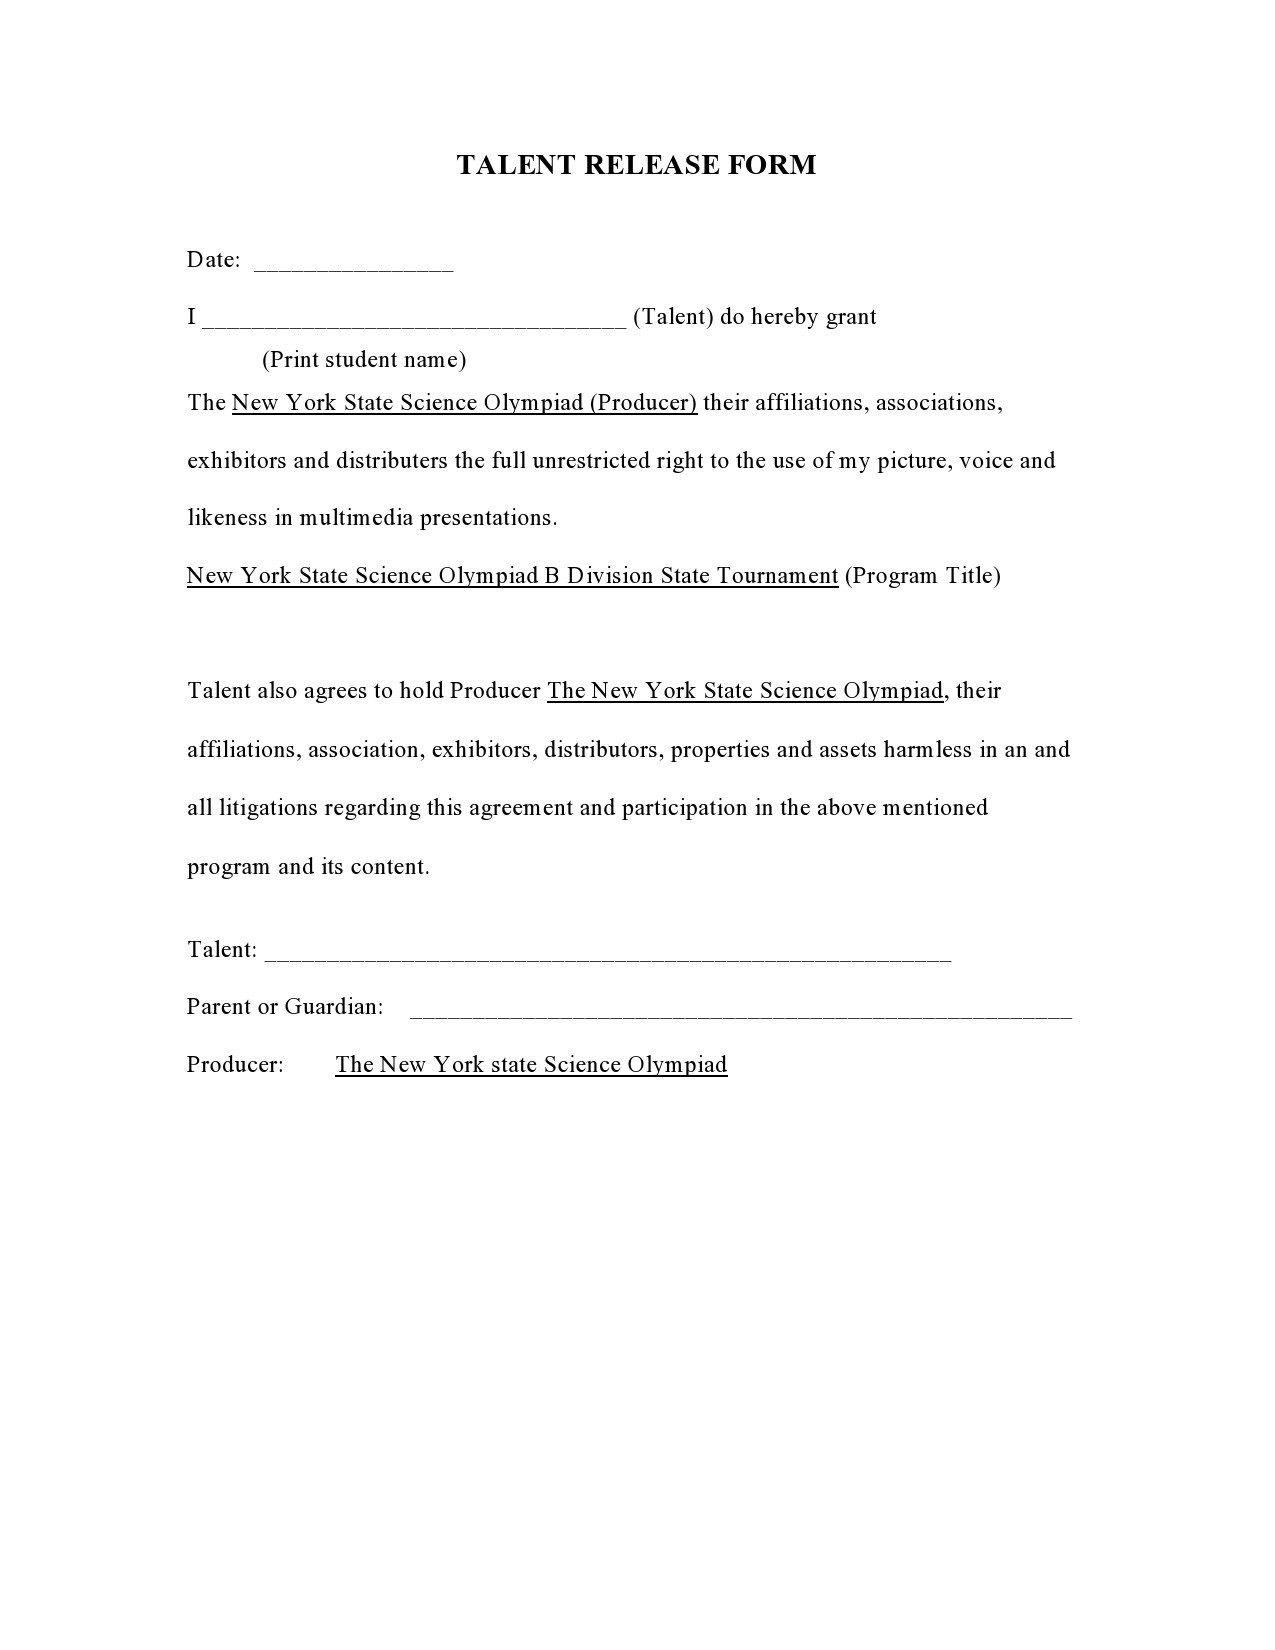 Free talent release form 42